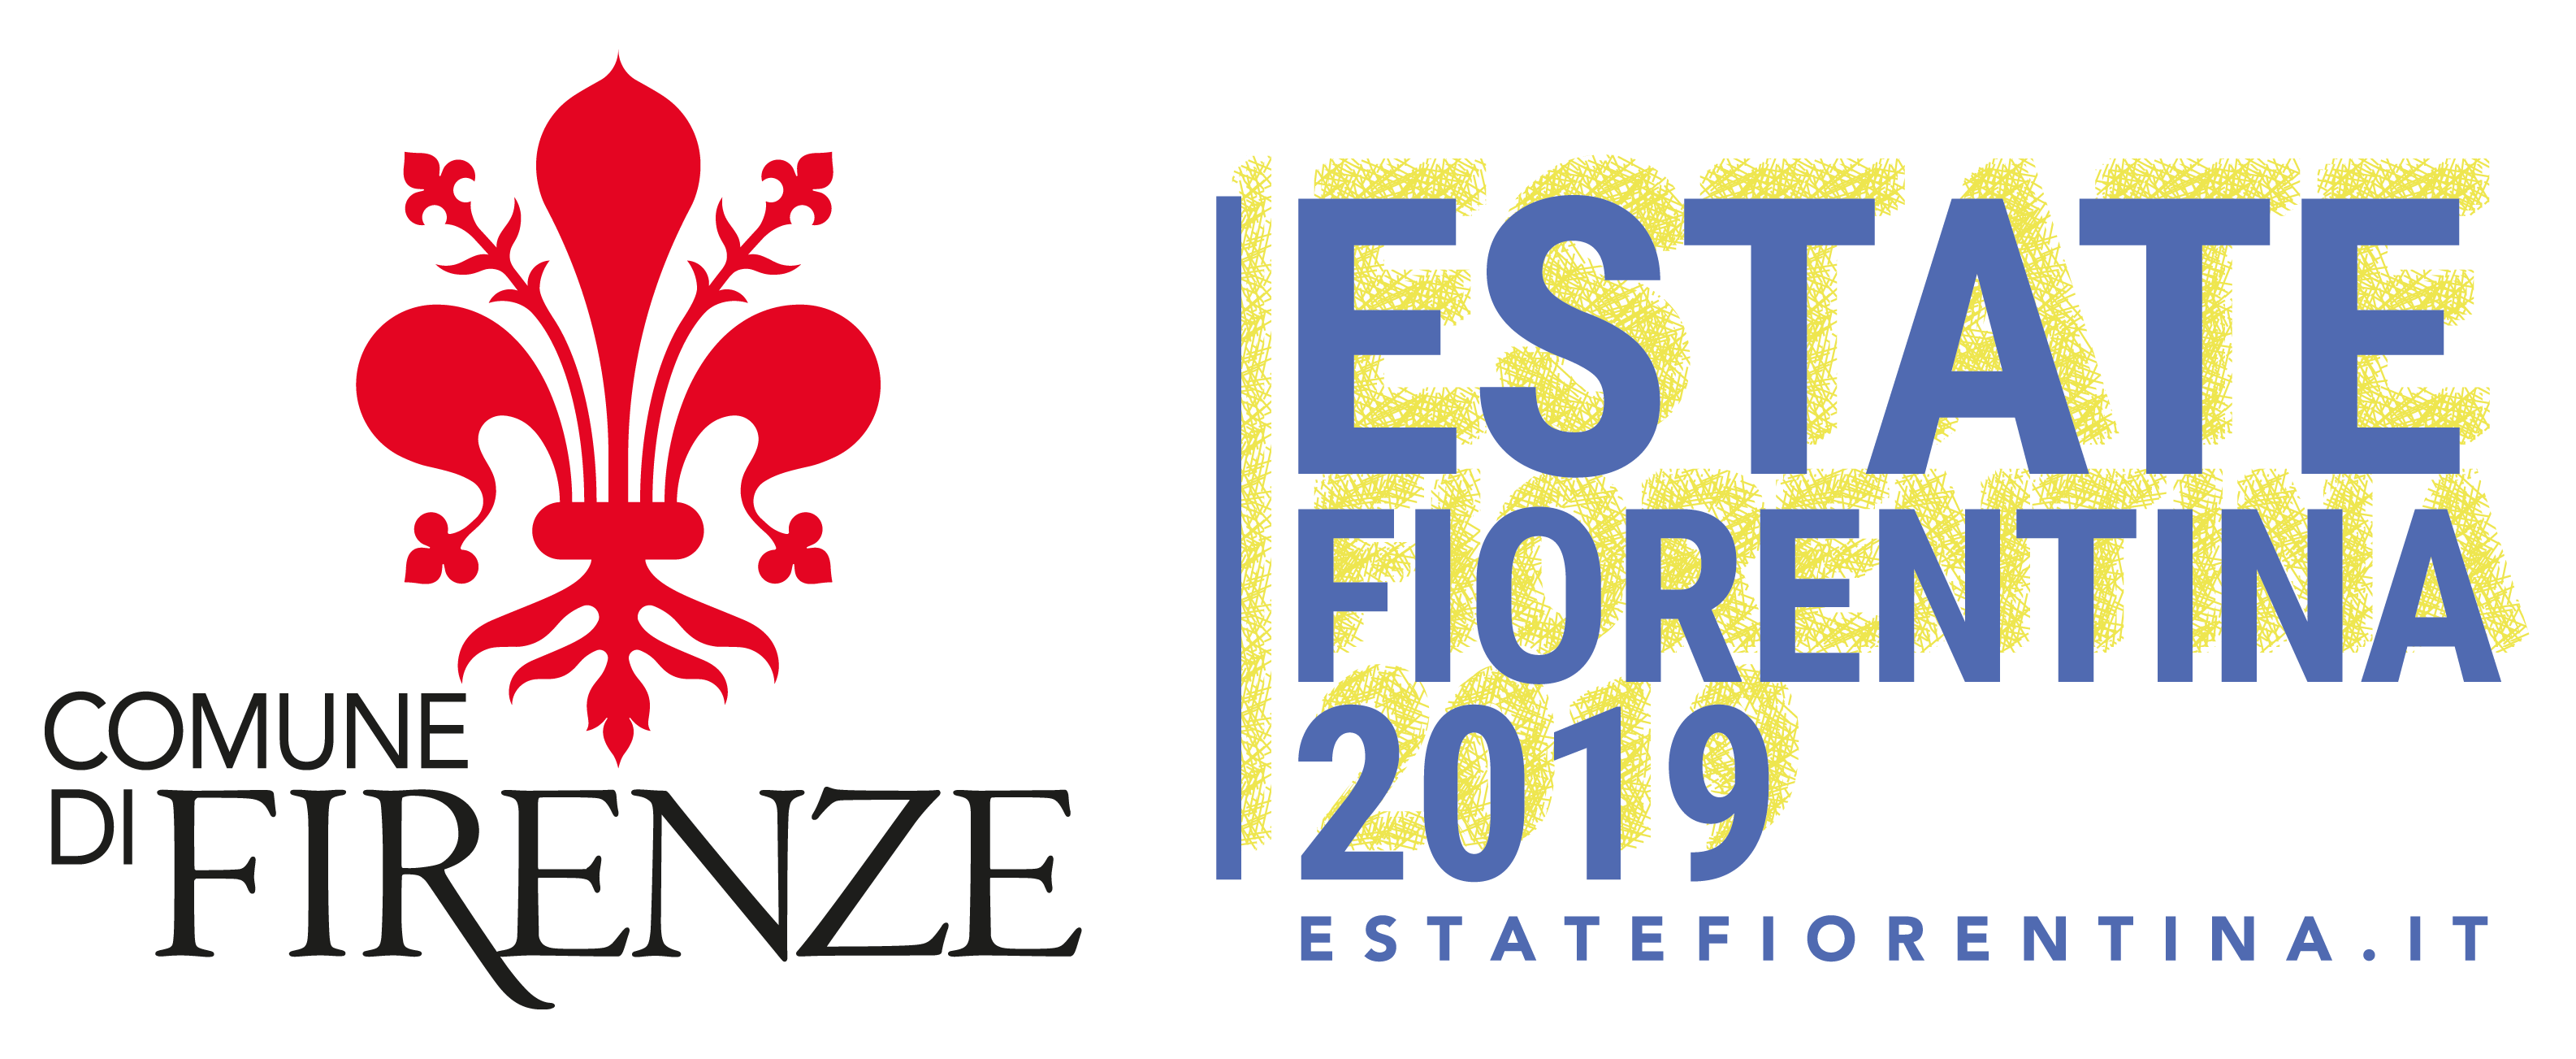 estate_fiorentina_2019